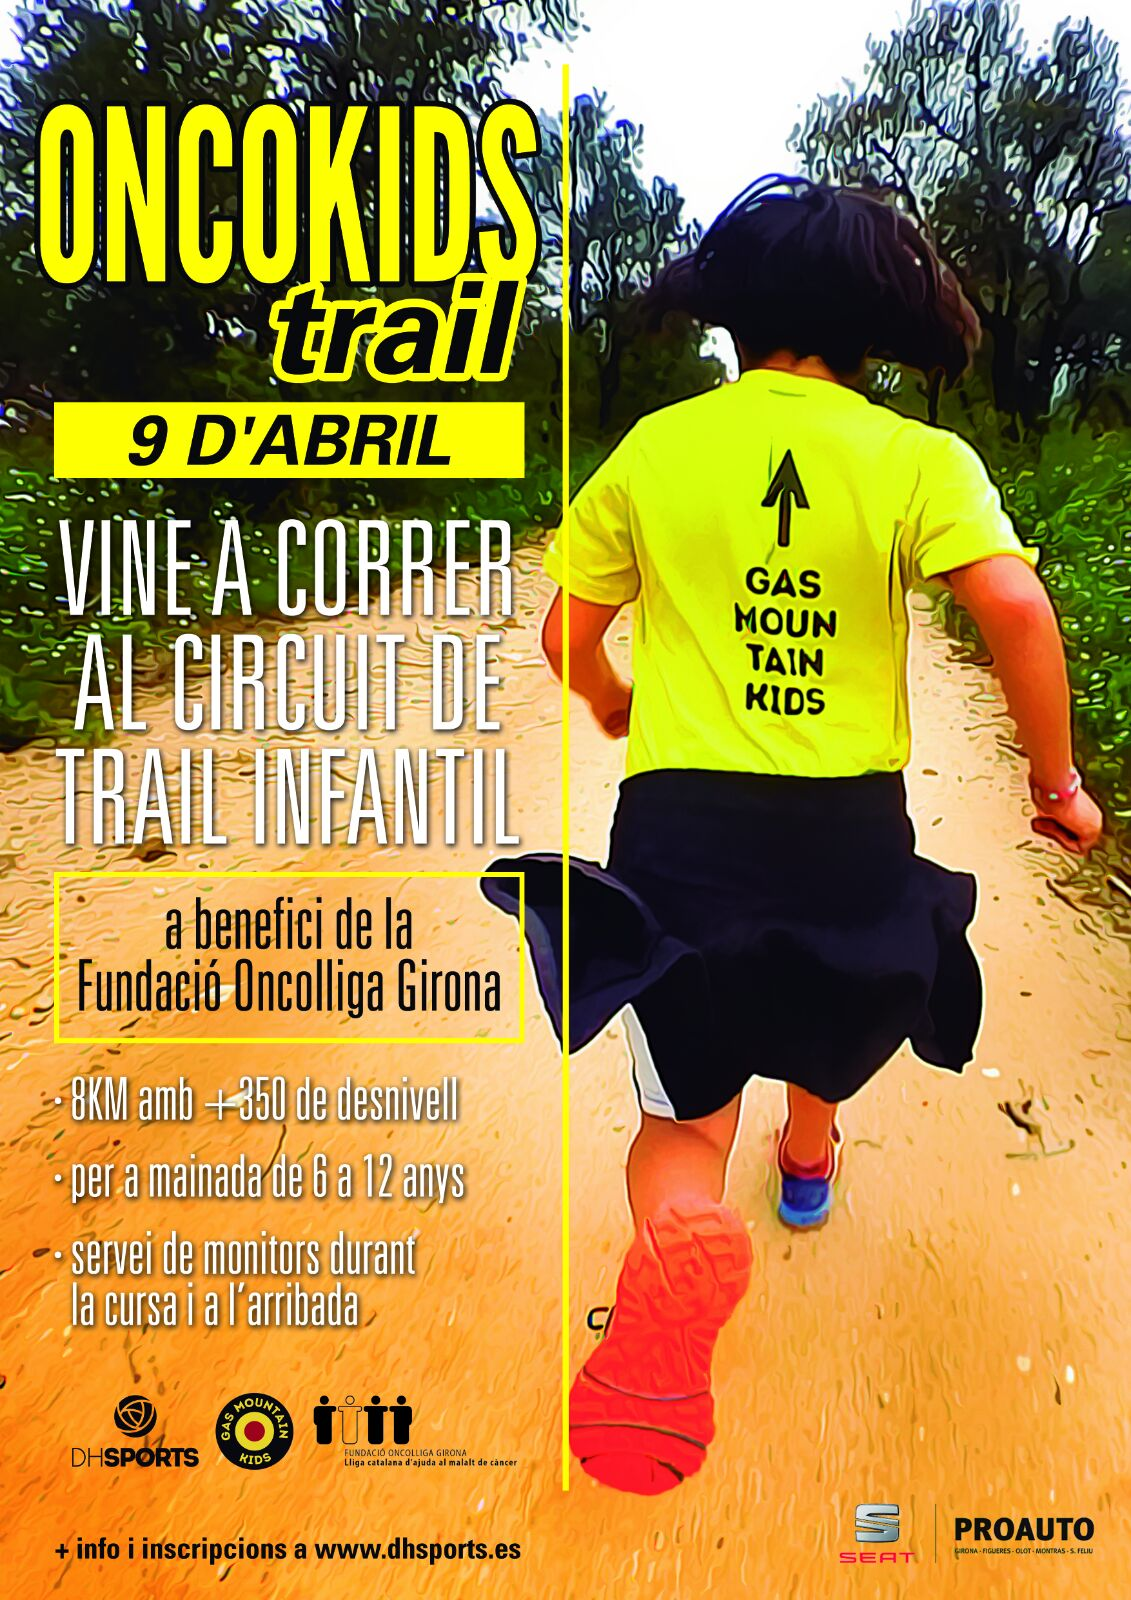 Rescator Roses Oncokids Trail pic de l'aliga